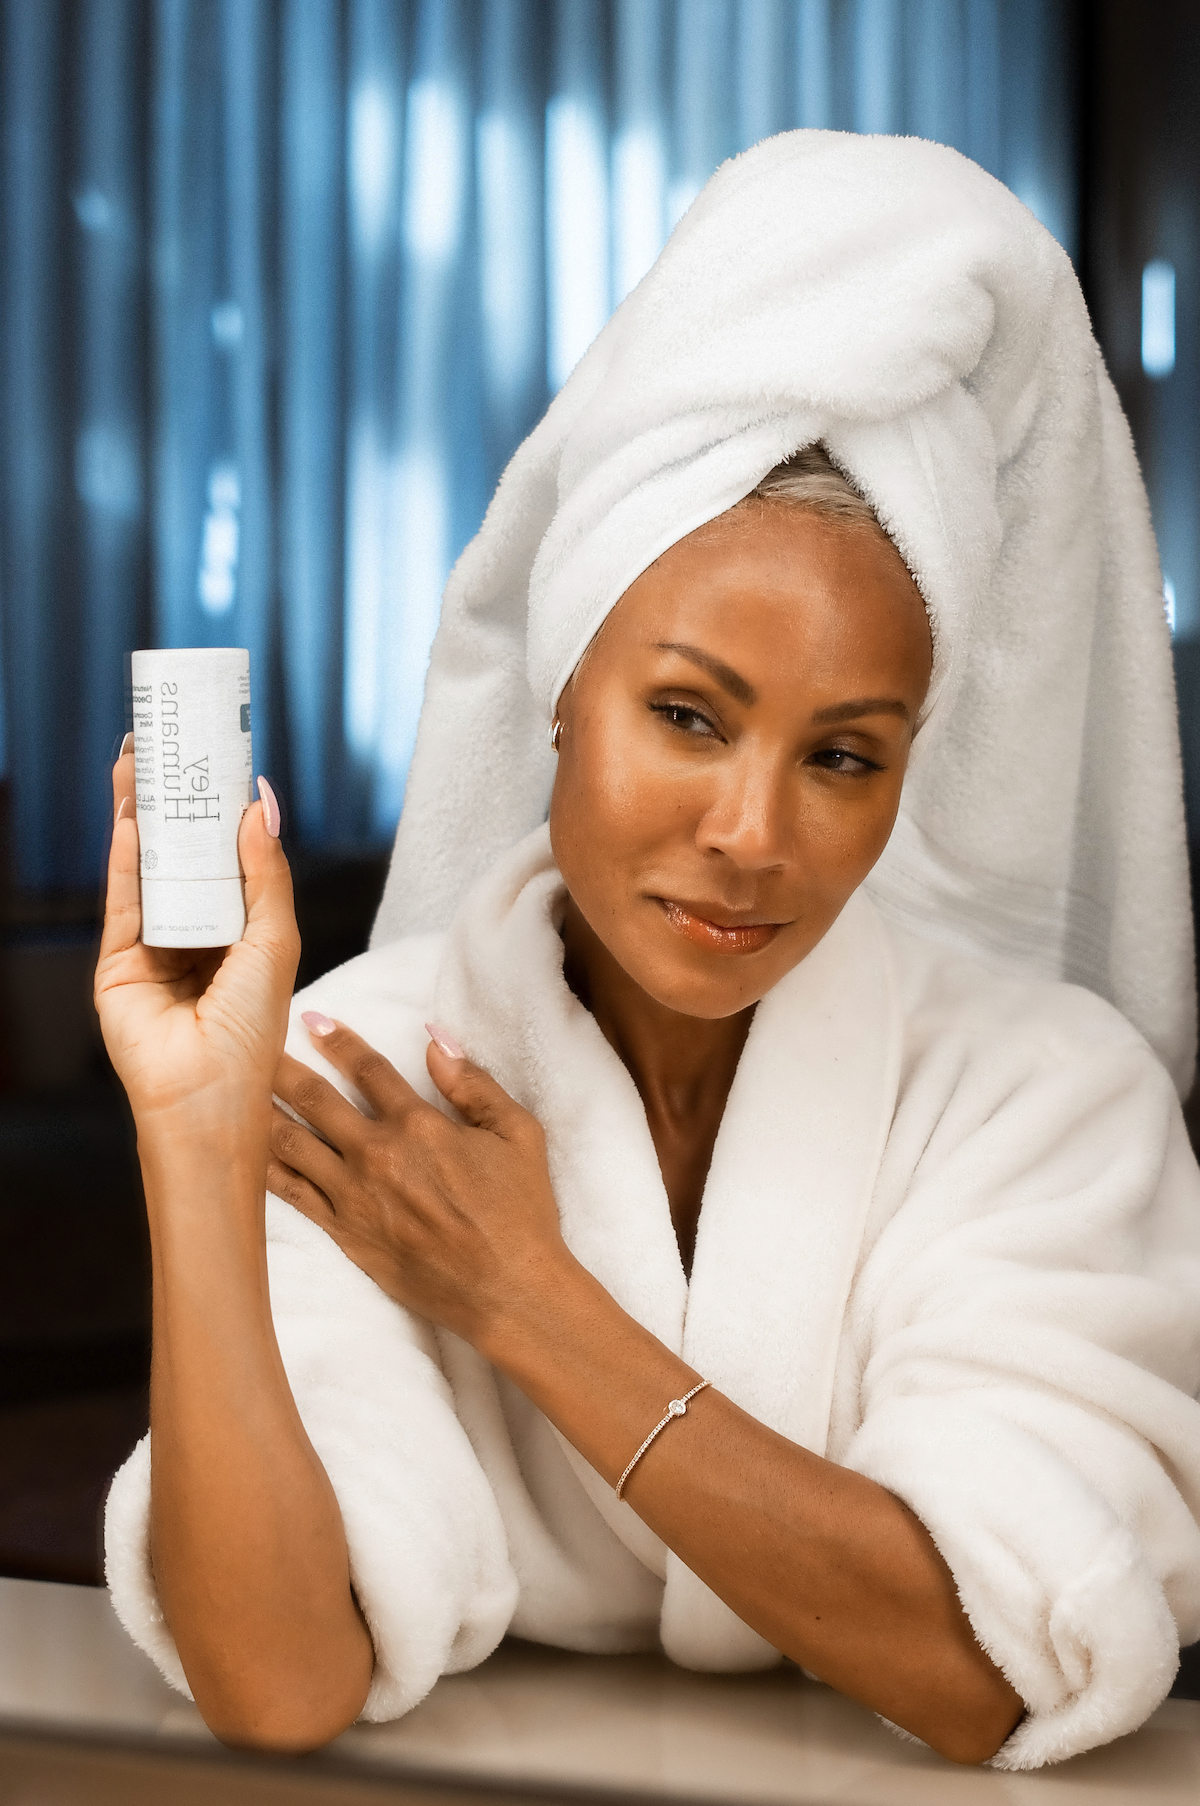 Jada Pinkett Smith co-founder of Hey Humans poses with the new personal care products available at Target and Target.com